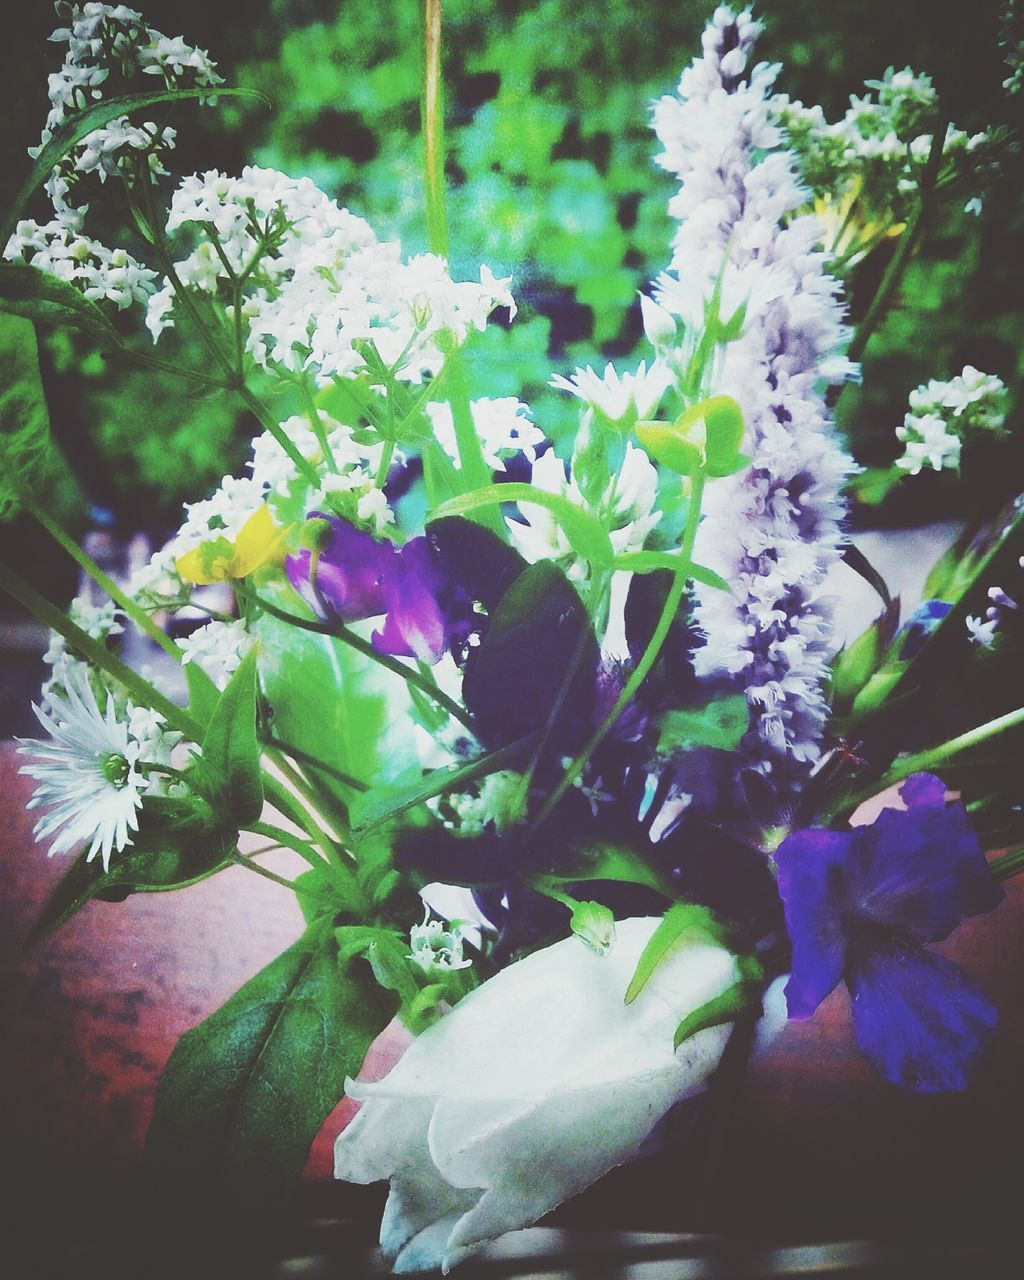 flower, nature, growth, plant, beauty in nature, blossom, purple, petal, fragility, no people, freshness, spring, blooming, close-up, outdoors, day, flower head